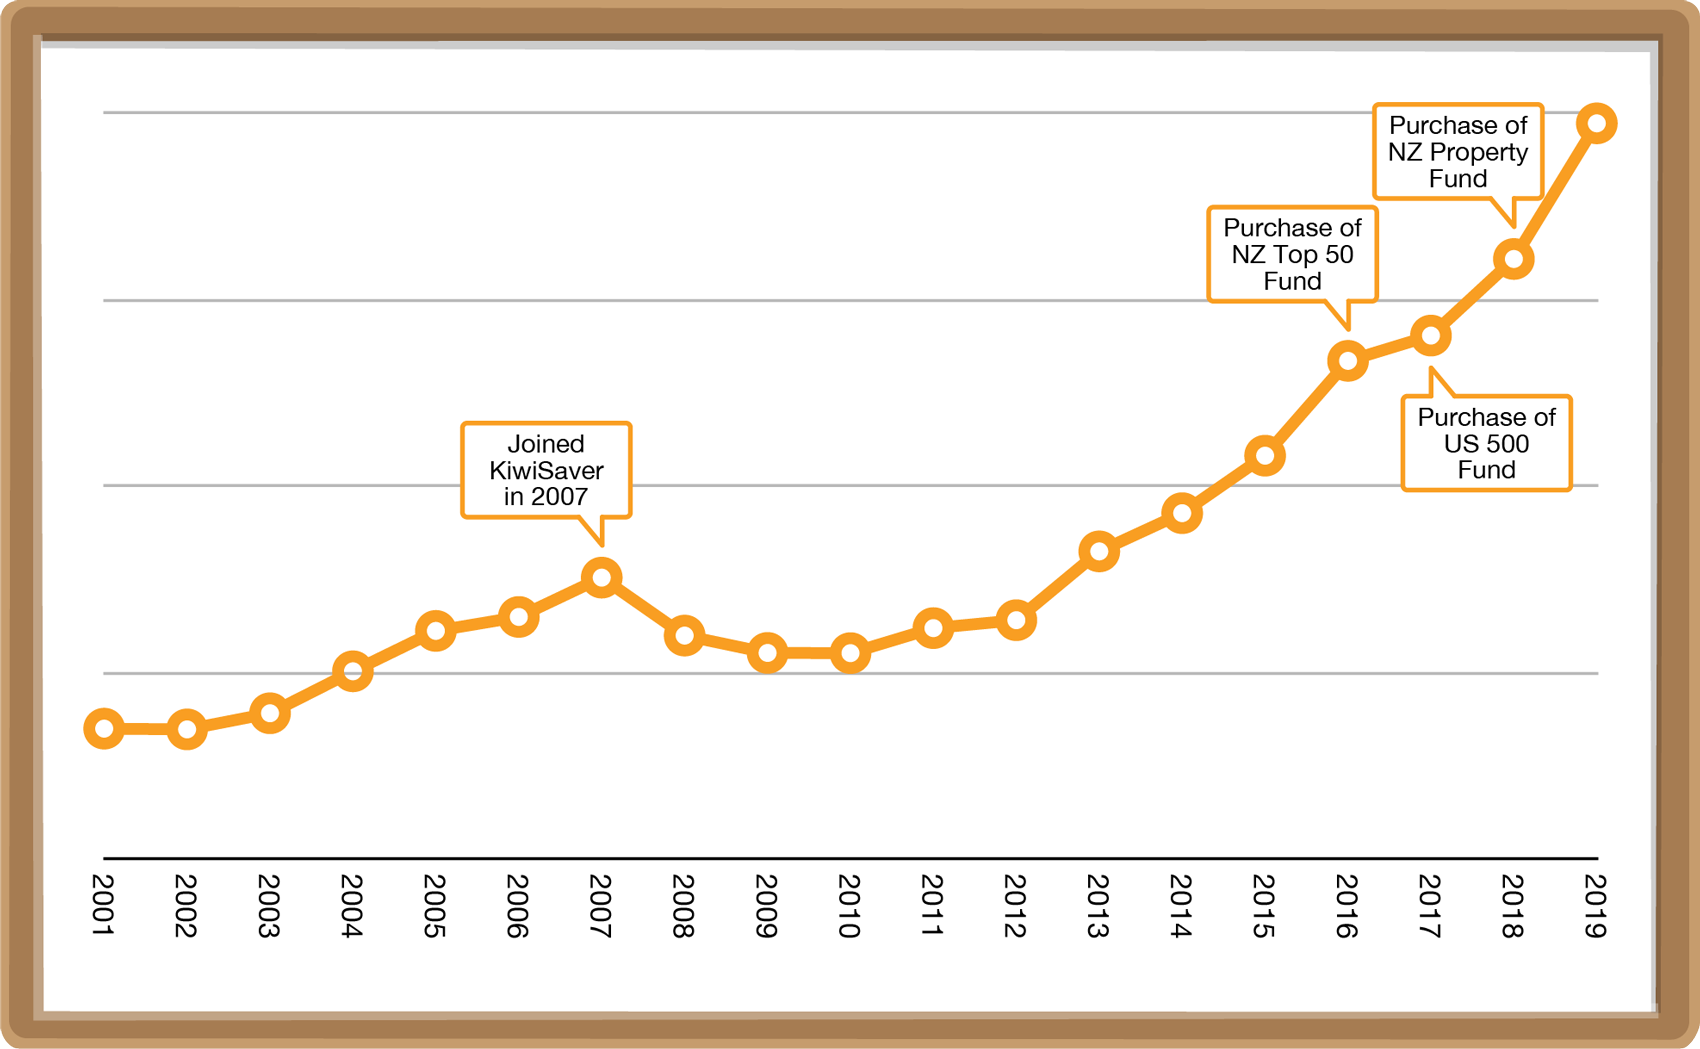 Steady rise in the NZX 50 over the years.